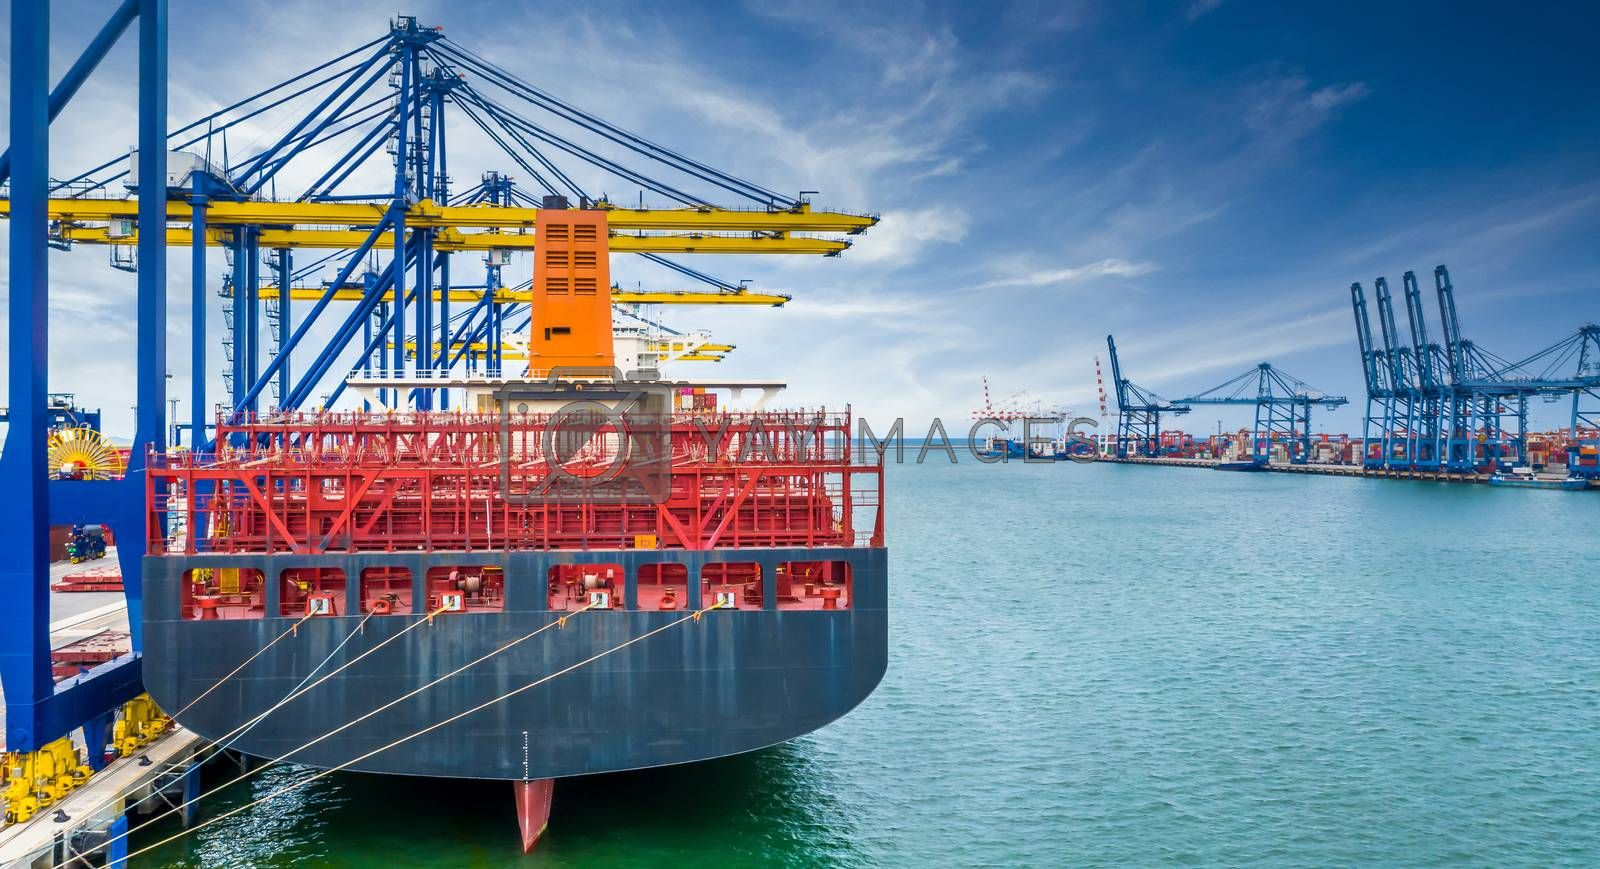 Cargo operation by cranes are stopped effect by covid-19 pandemic around the world economic down crisis, Crane and container shipping export import business logistics in harbor industry, Logistic and supply chain crisis.